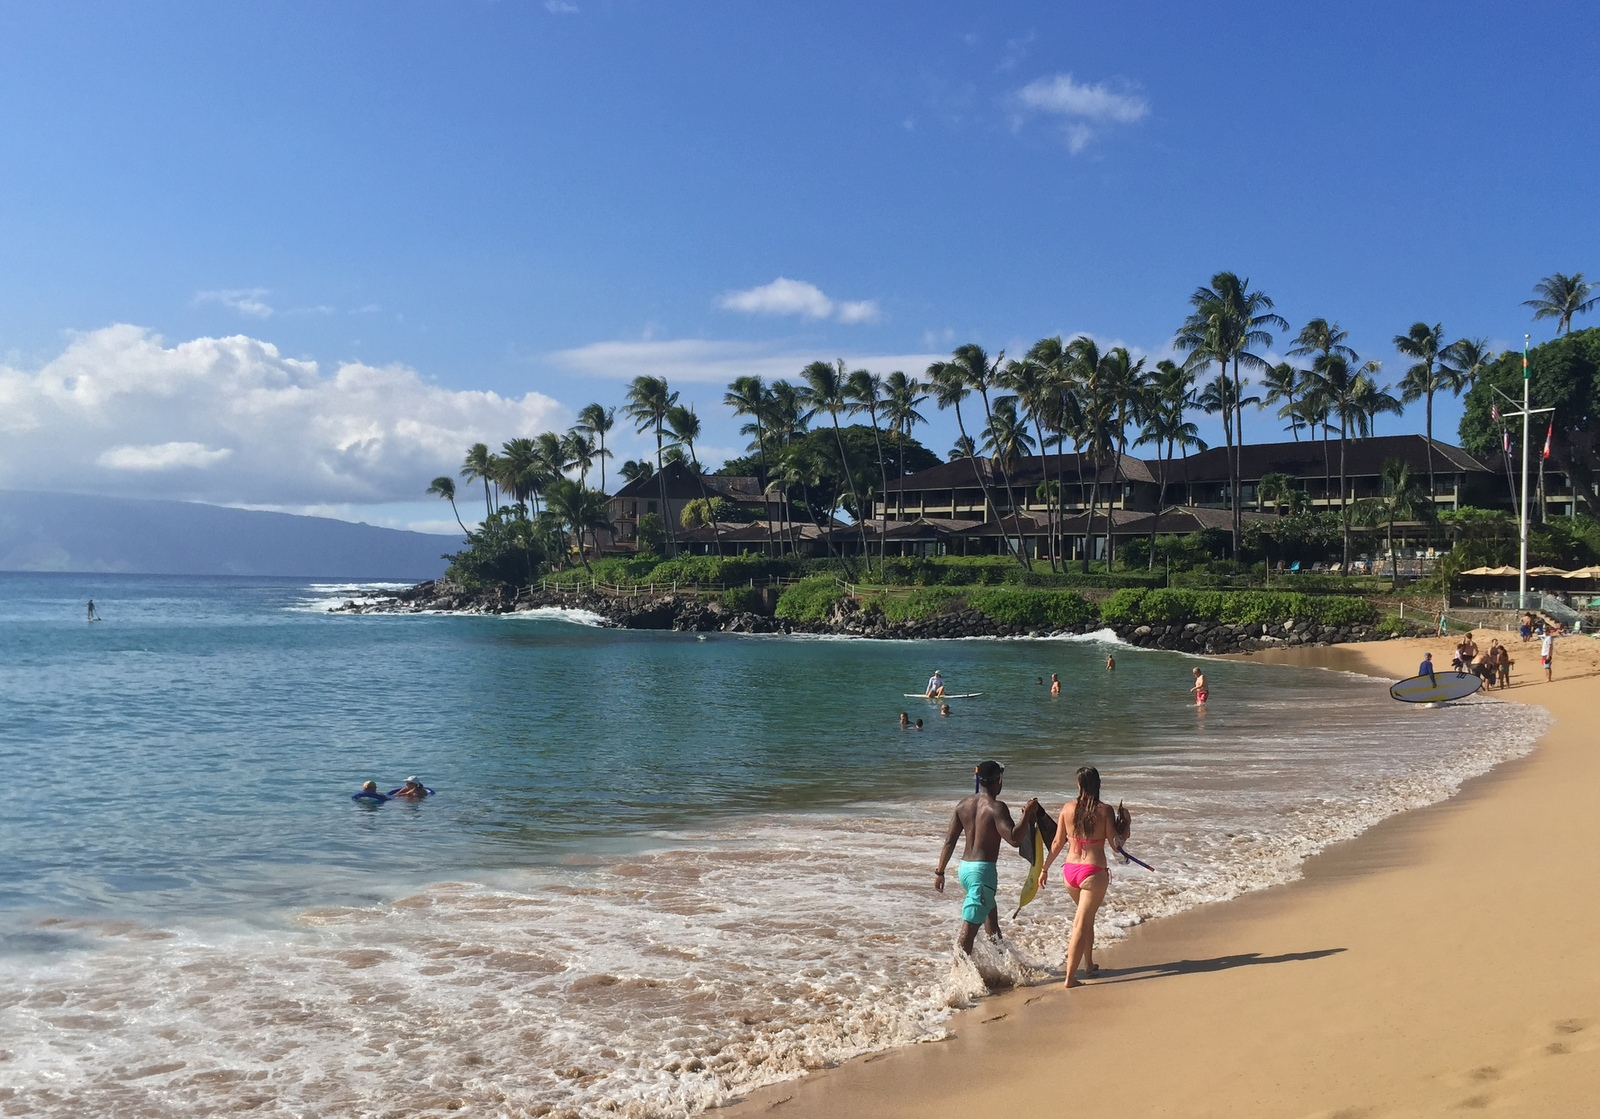 April is a great time to find value on a Hawaii holiday. - JIM BYERS PHOTO